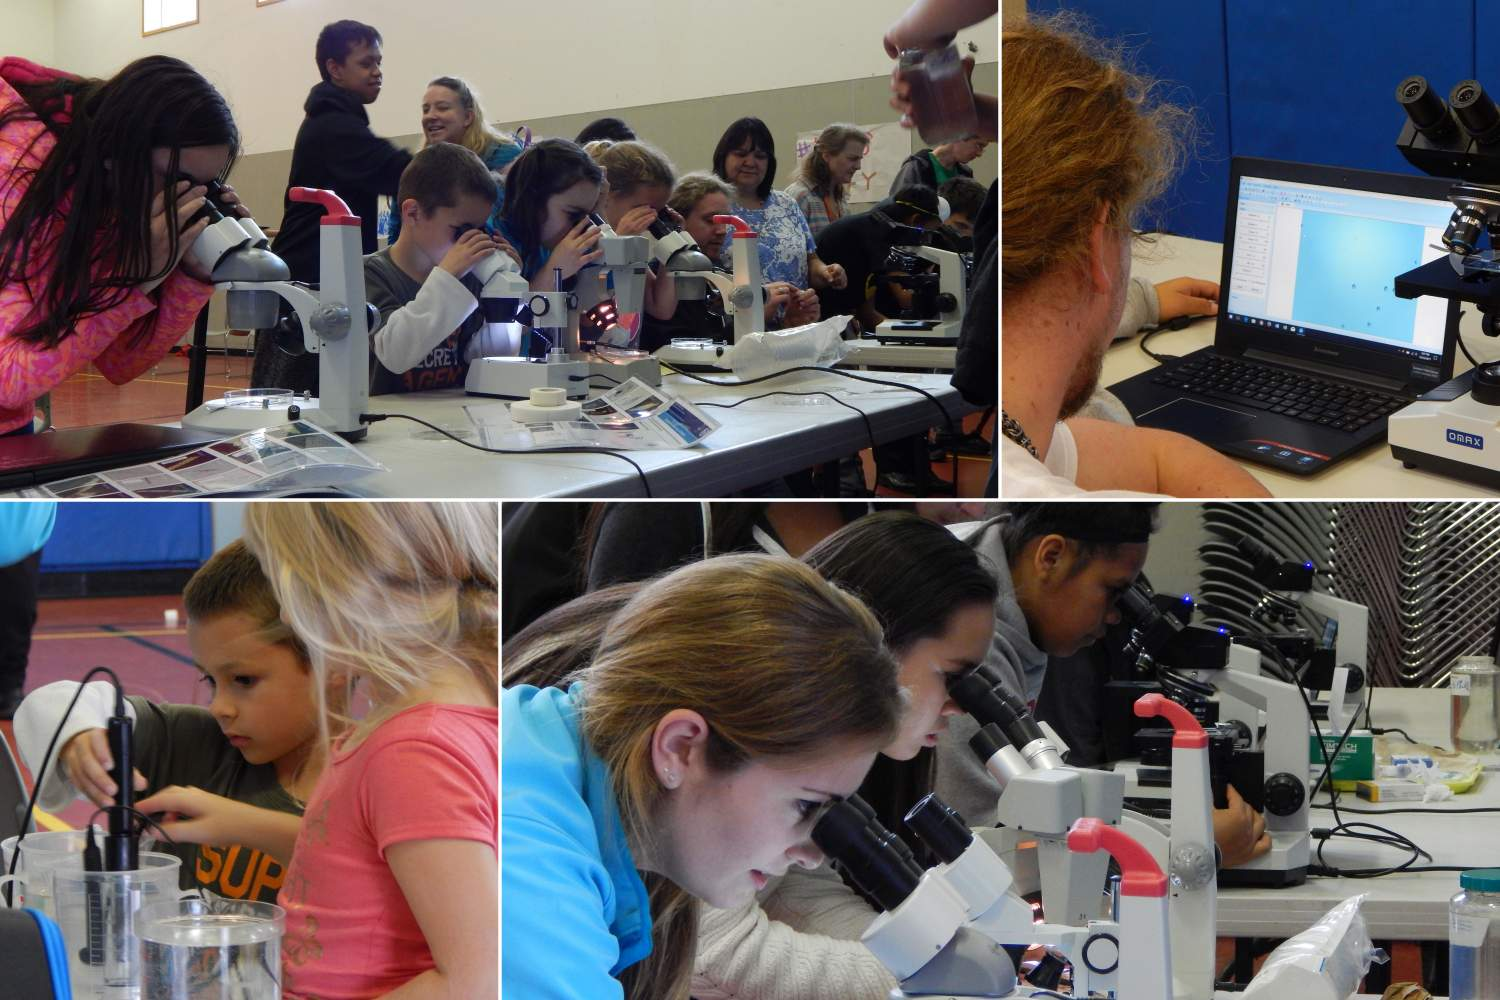 Get Dirty! Kids using microscopes